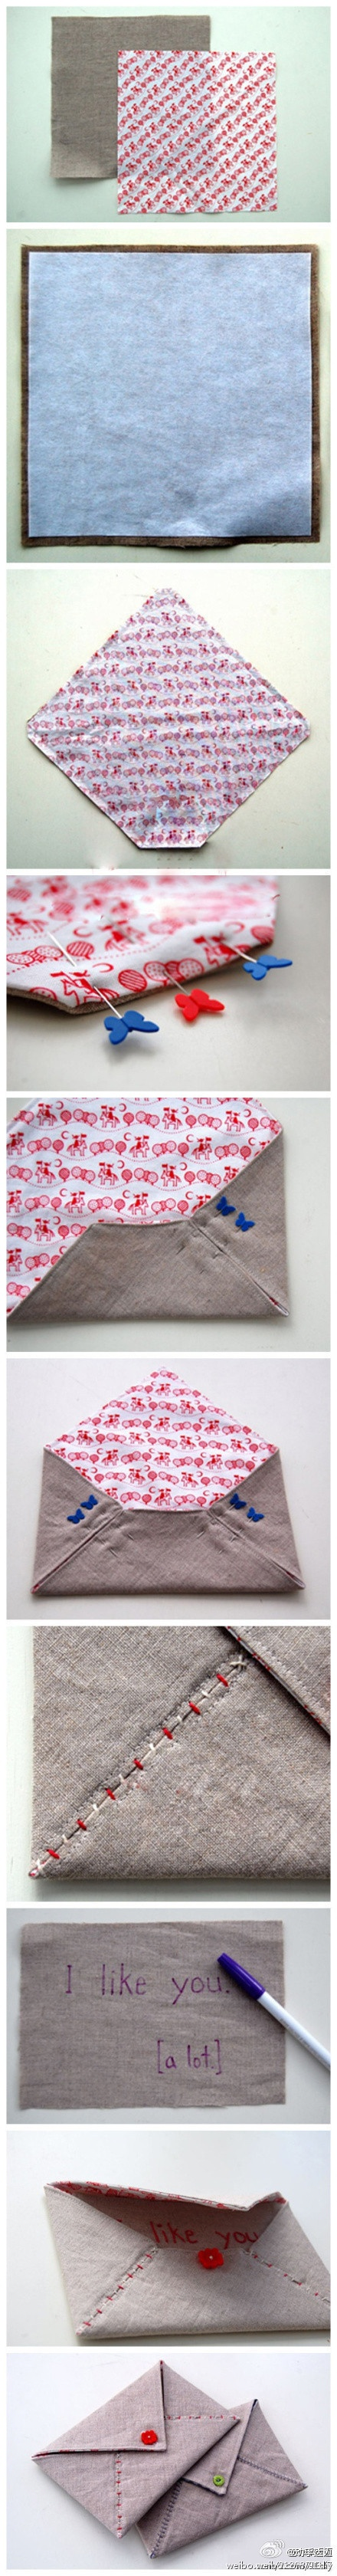 : Sewing, Stitched Envelope, Ideas, Craft, Gift, Fabrics, Diy, Fabric Envelopes